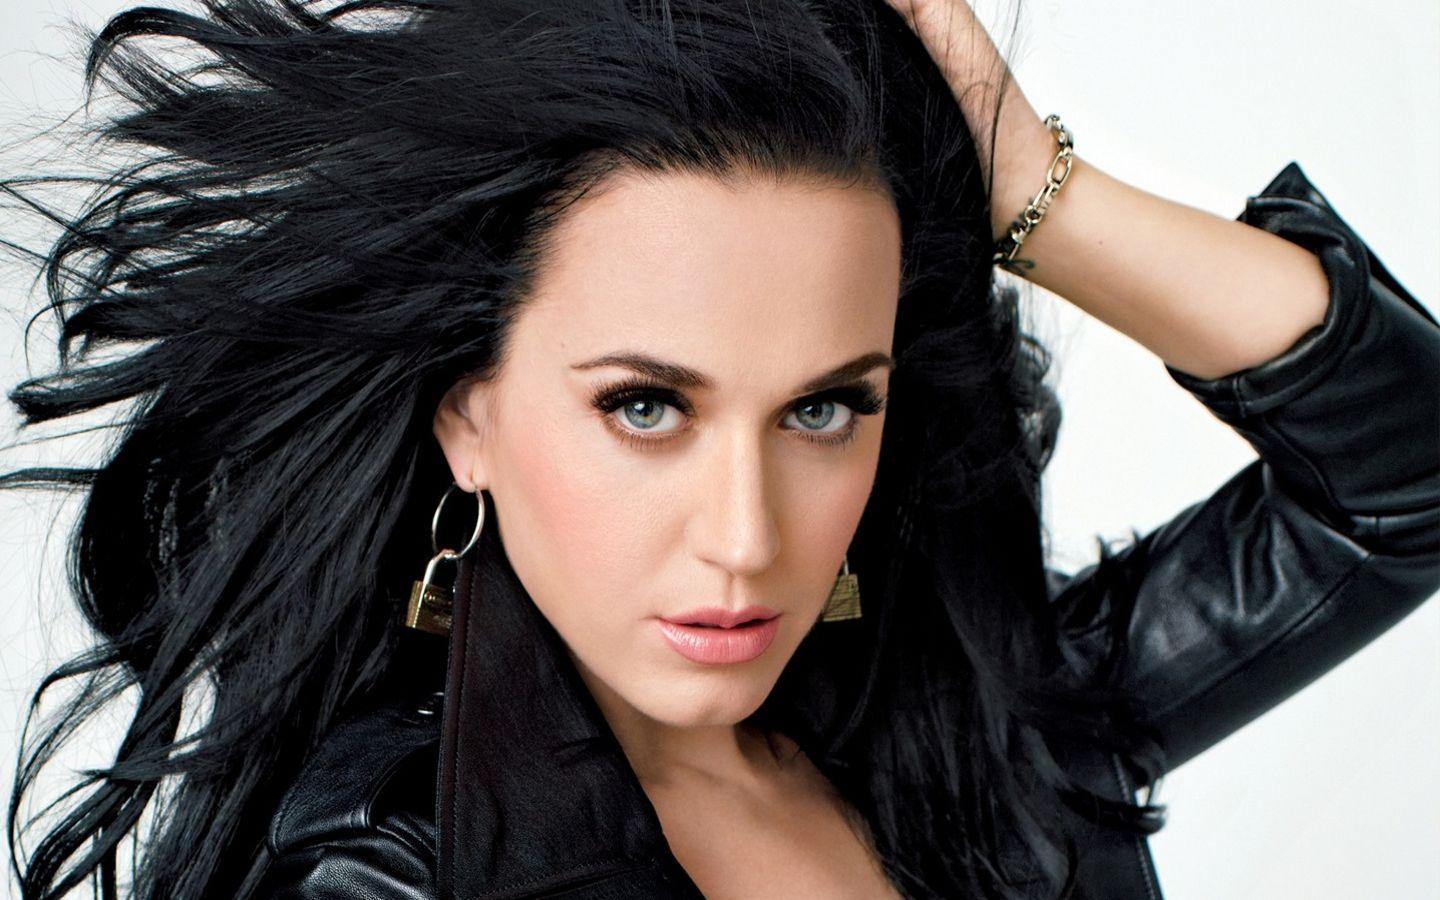 katy perry wallpaper 1080p - photo #16